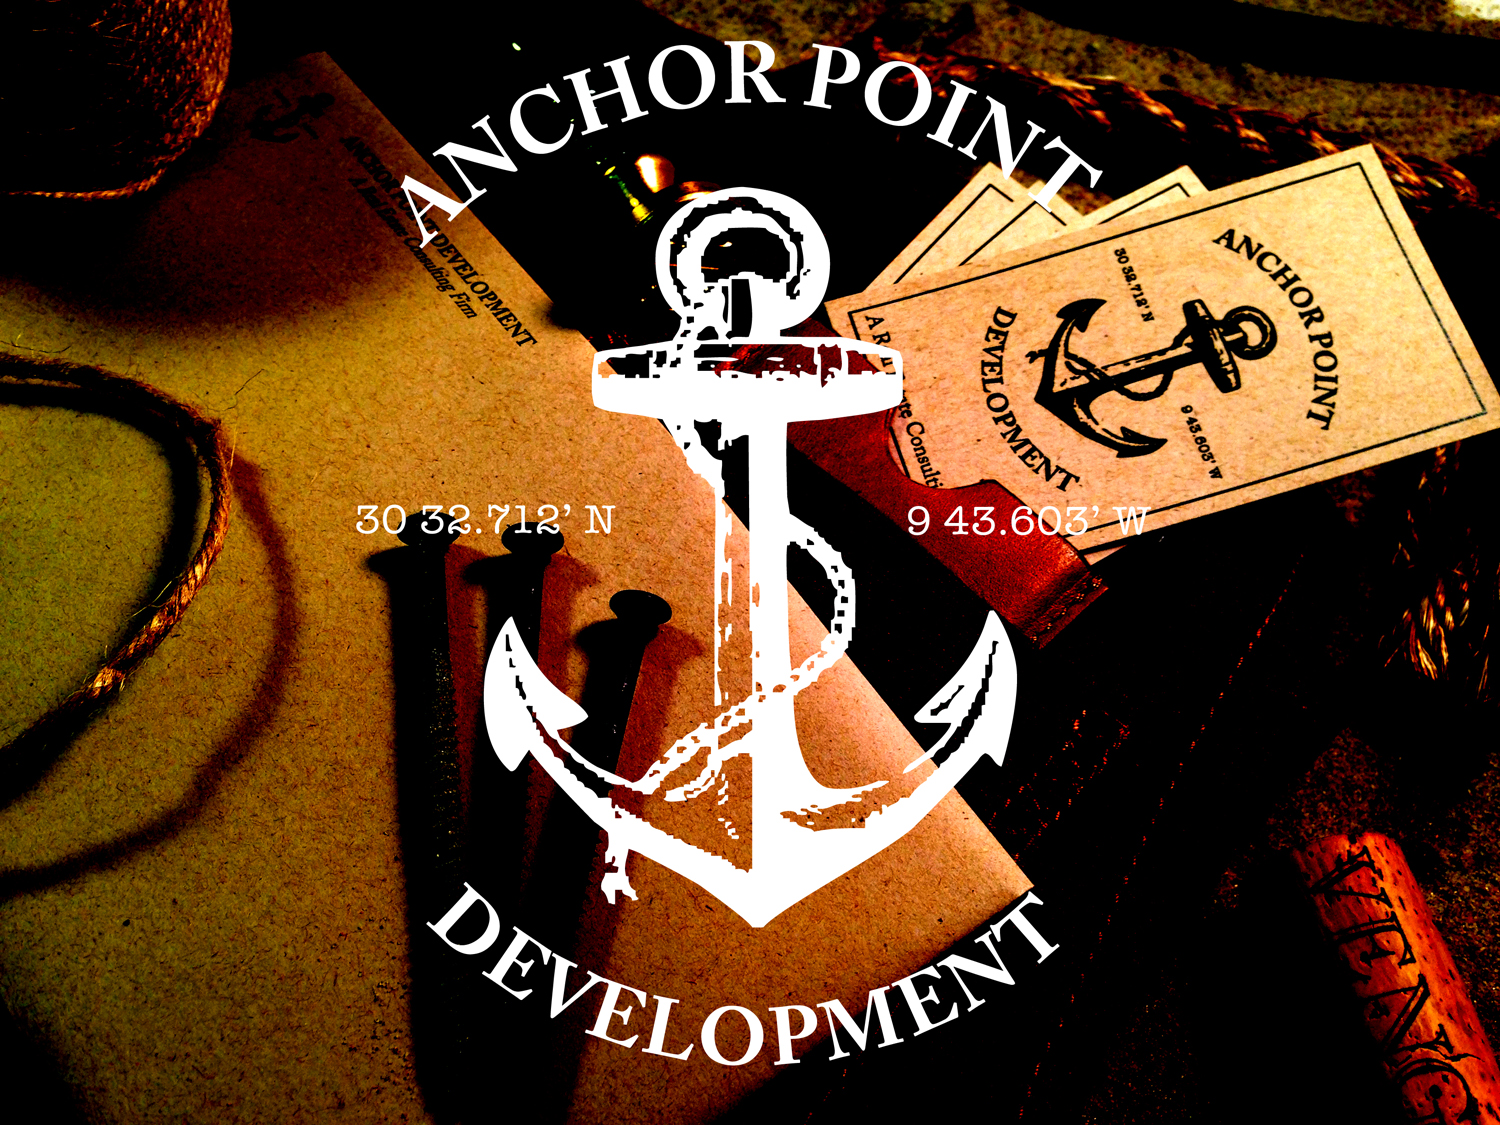 ANCHOR POINT